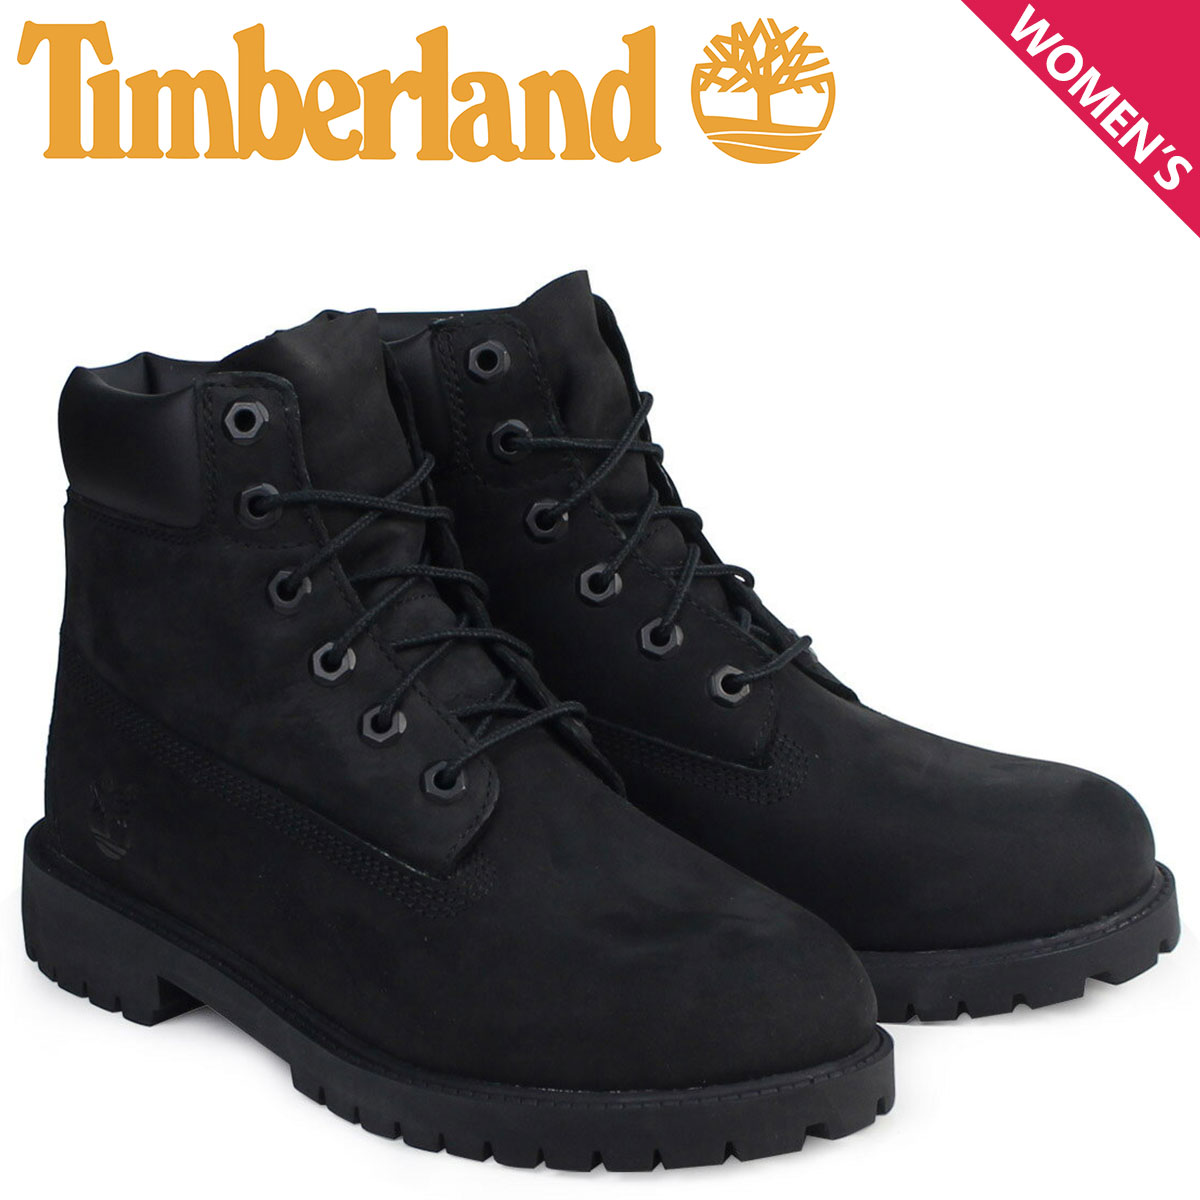 Timberland 6INCH WATERPROOF BOOTS Lady's boots 6 inches Timberland premium waterproof 12907 black [199]